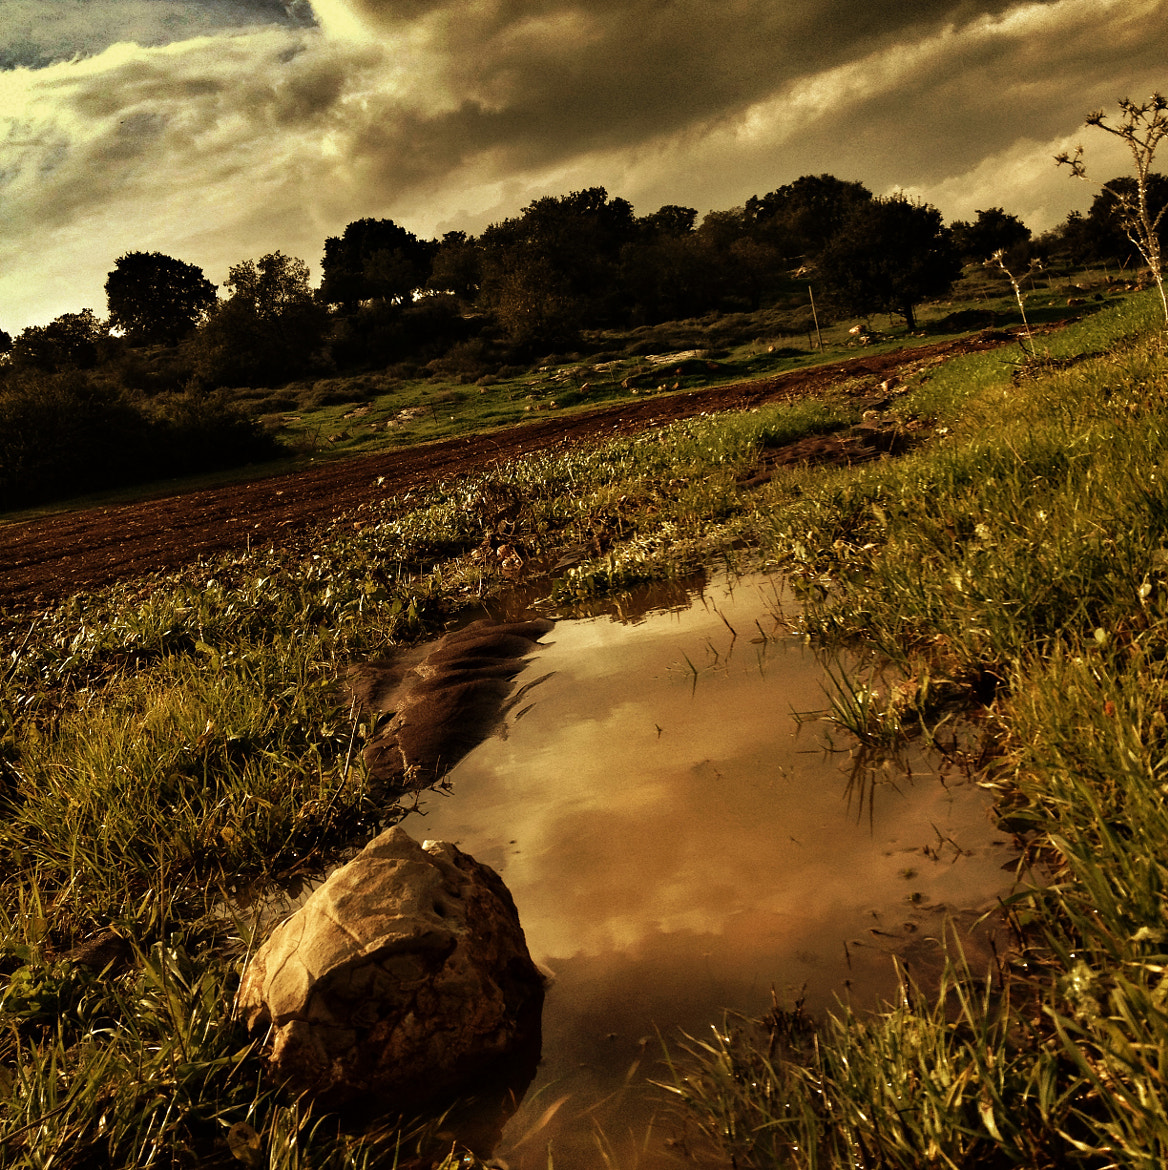 Photograph sky puddle by yaara duvdevan on 500px